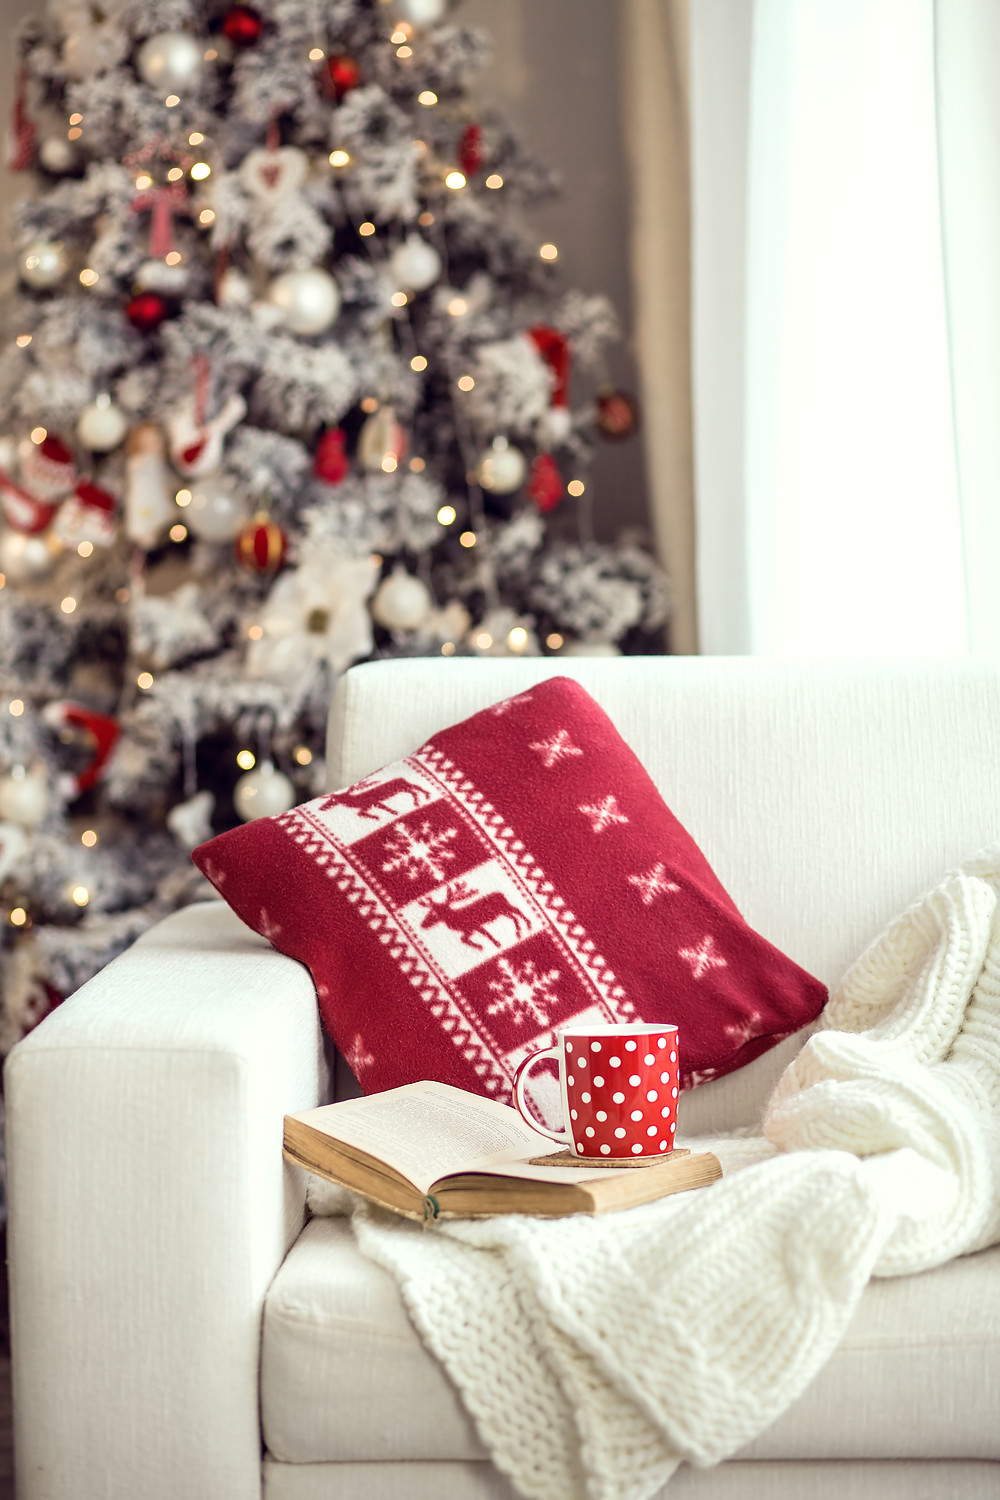 Cozy holiday scene of a tree, a book and a cup of coco.